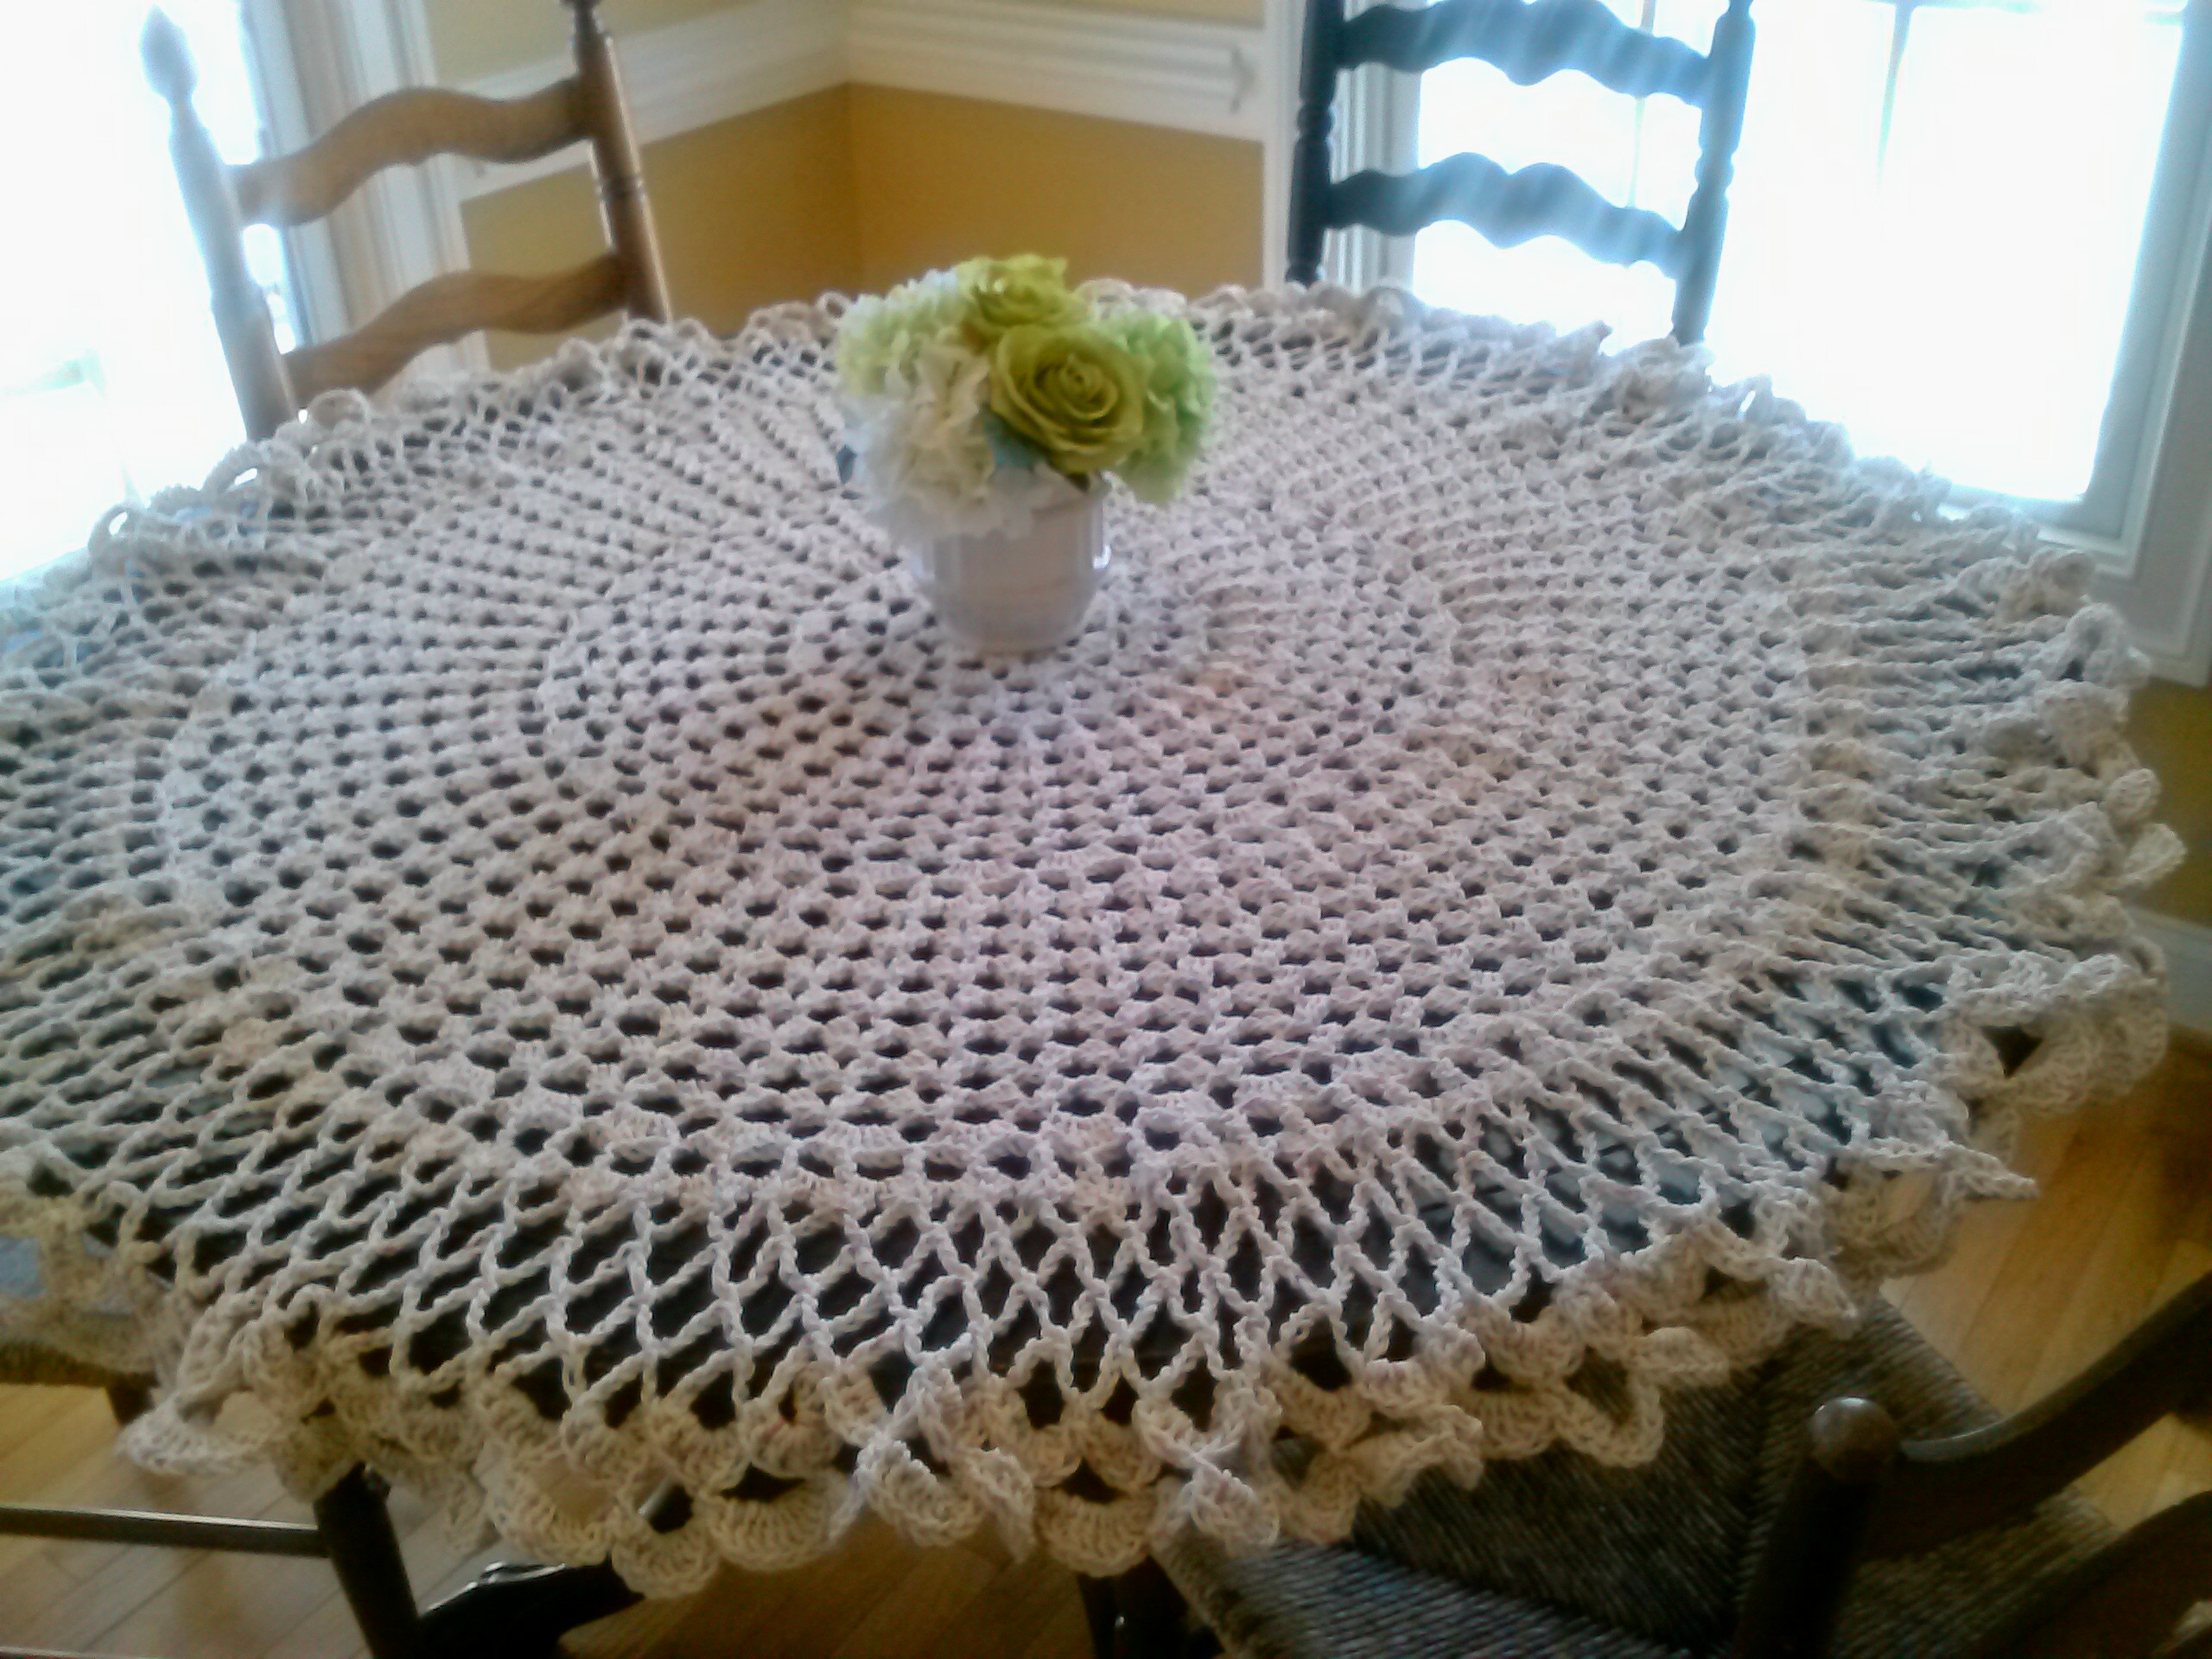 Second Crocheted Tablecloth A Place For Learning